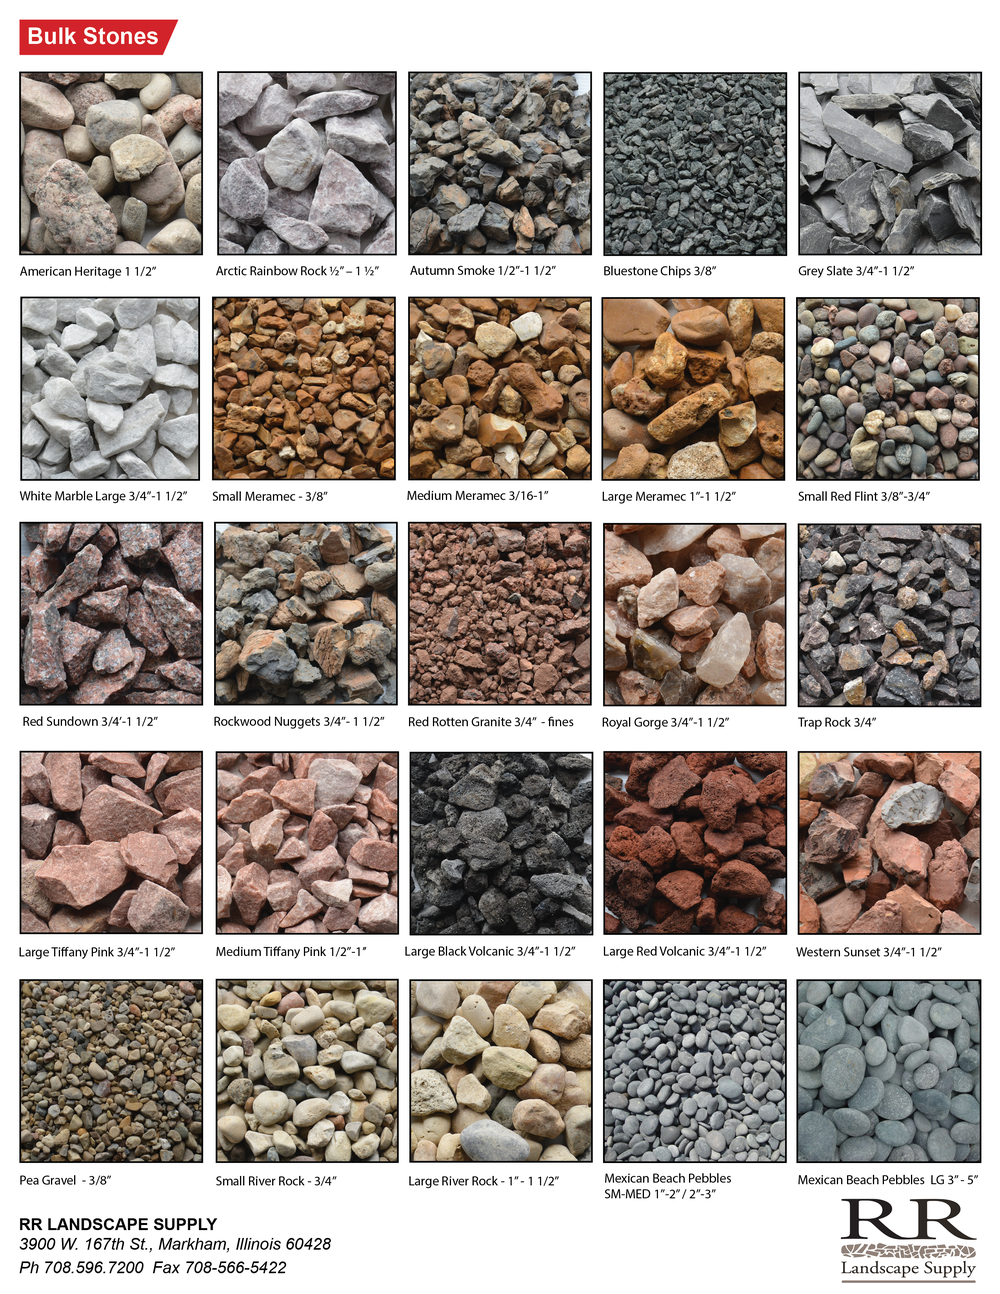 RR Landscape Supply_Bulk Stone Image Guide.png